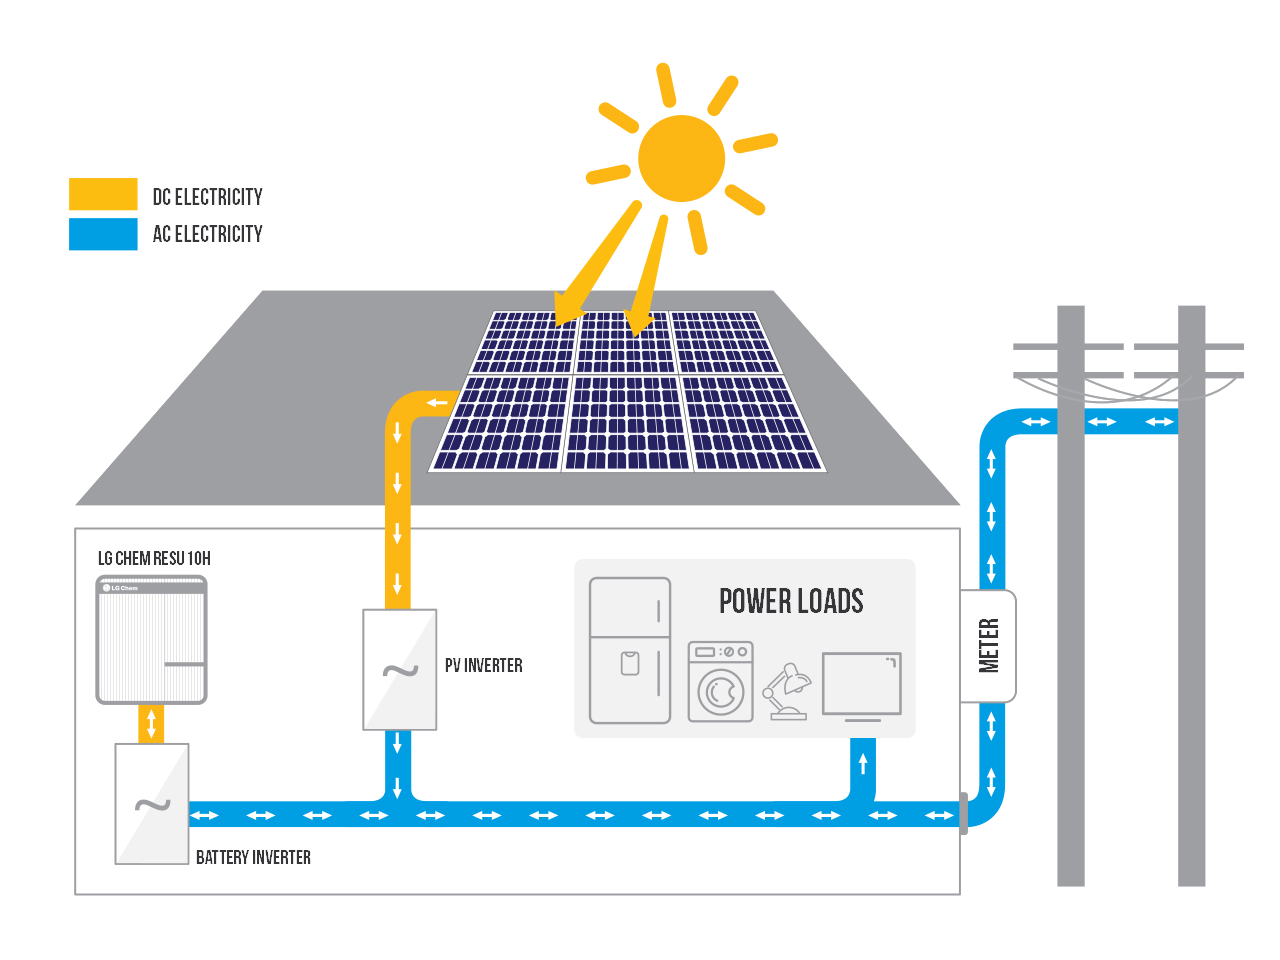 - The LG Chem RESU10H is a battery system ideal for existing solar power (PV) systemsIts rechargeable lithium-ion battery pack provides energy storage for solar self-consumption, load shifting, and backup power.